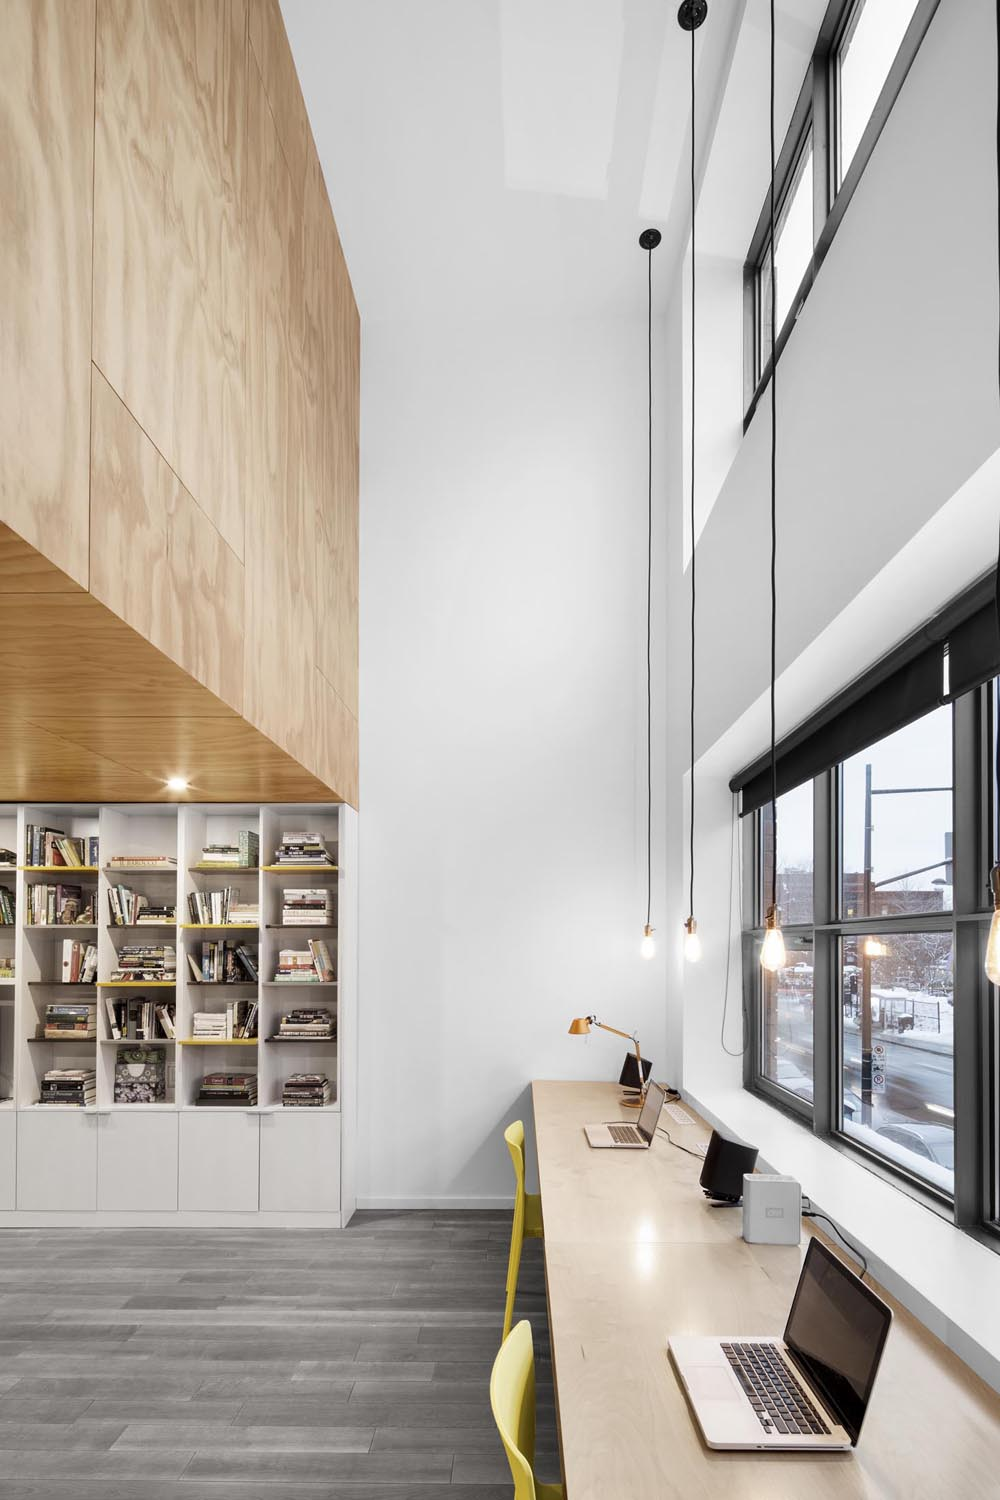 Apartment / Naturehumaine